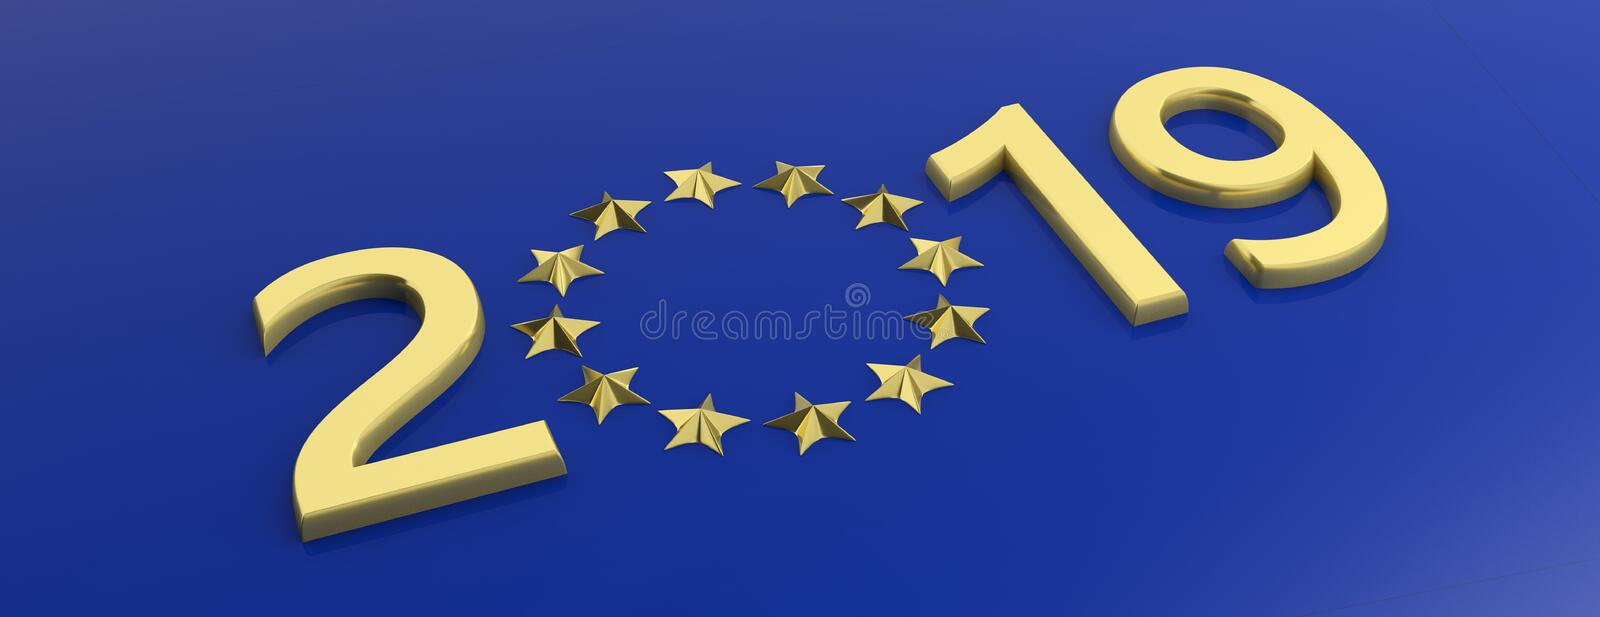 European Union election. Gold 2019 number and a a golden stars circle on blue background. 3d illustration stock illustration